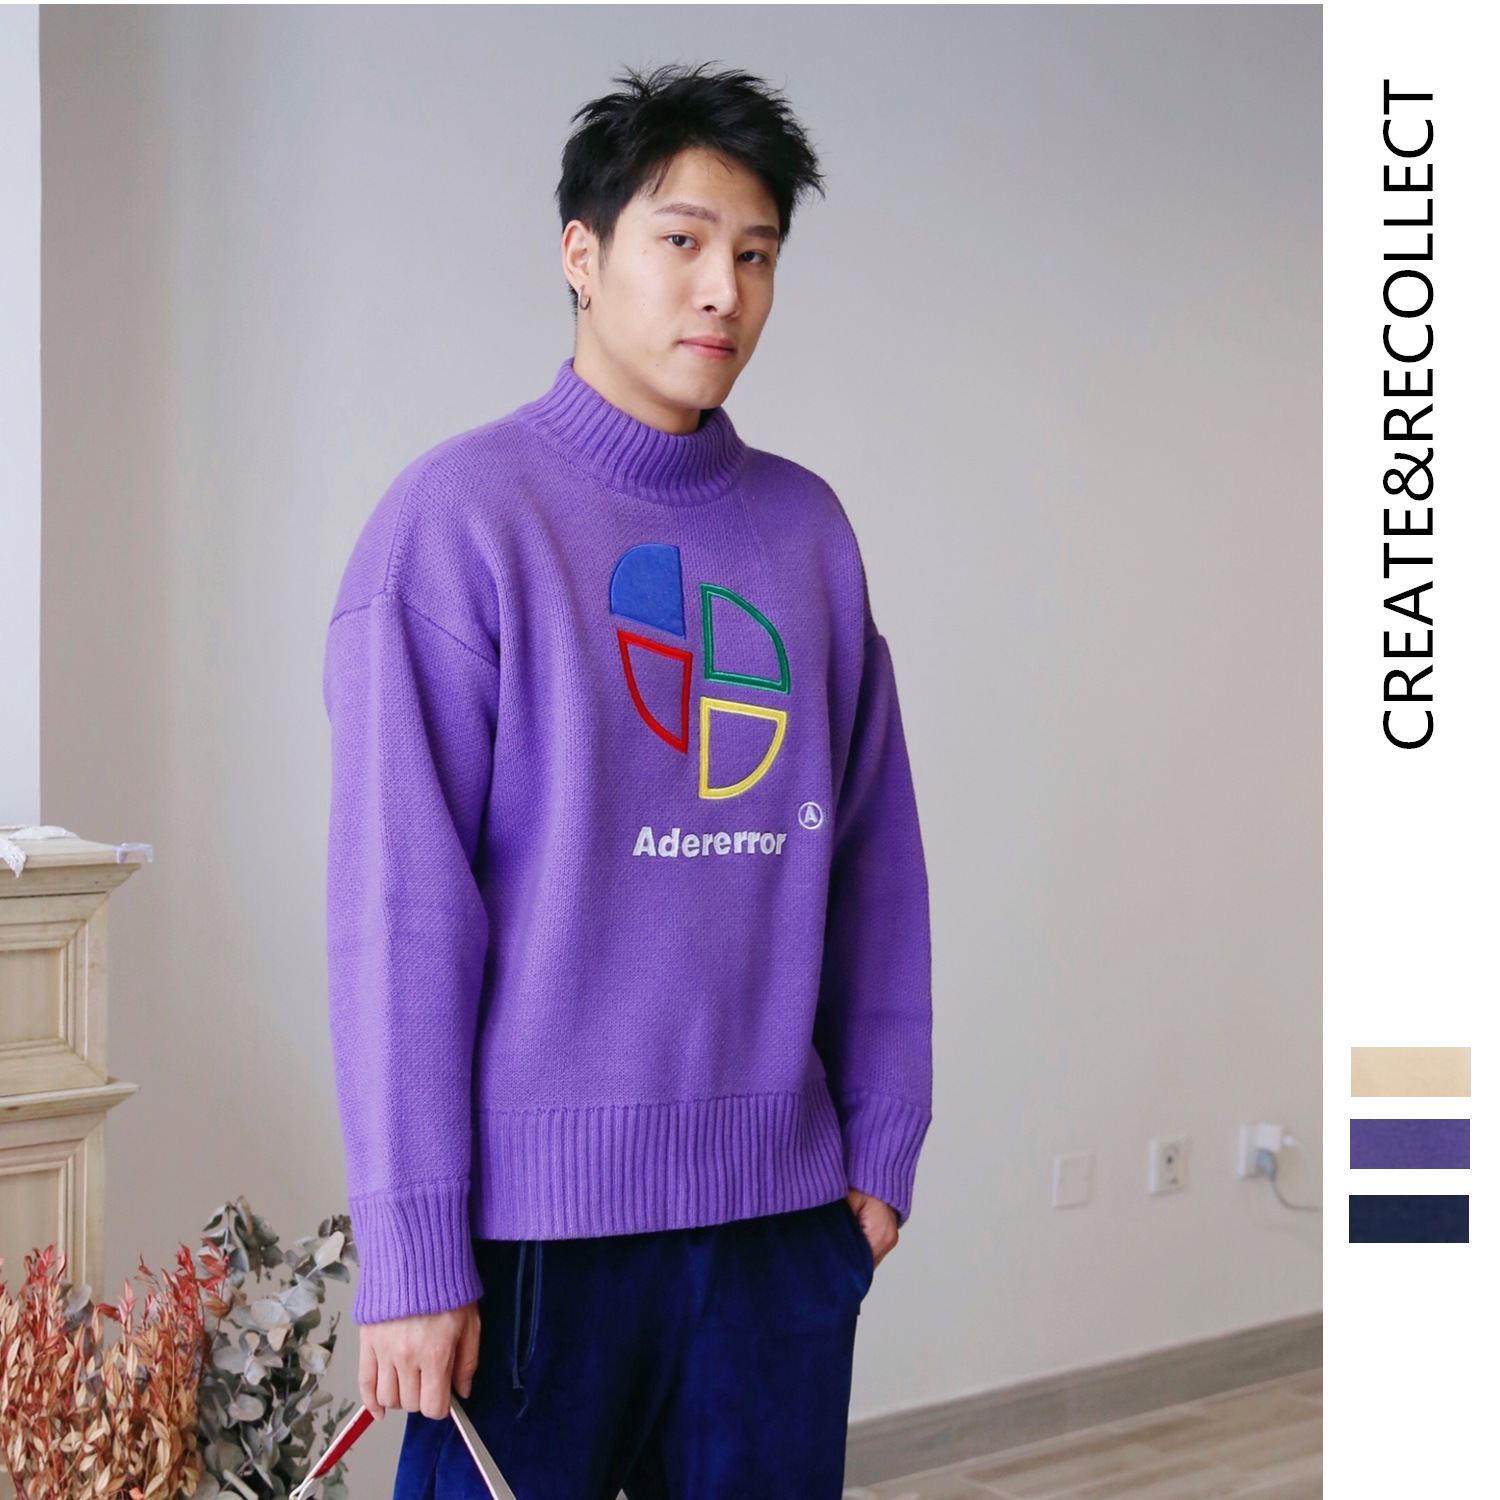 CR / 19 autumn and winter new couple half high collar loose sweater mens and womens embroidered colorful fan-shaped pattern T-shirt